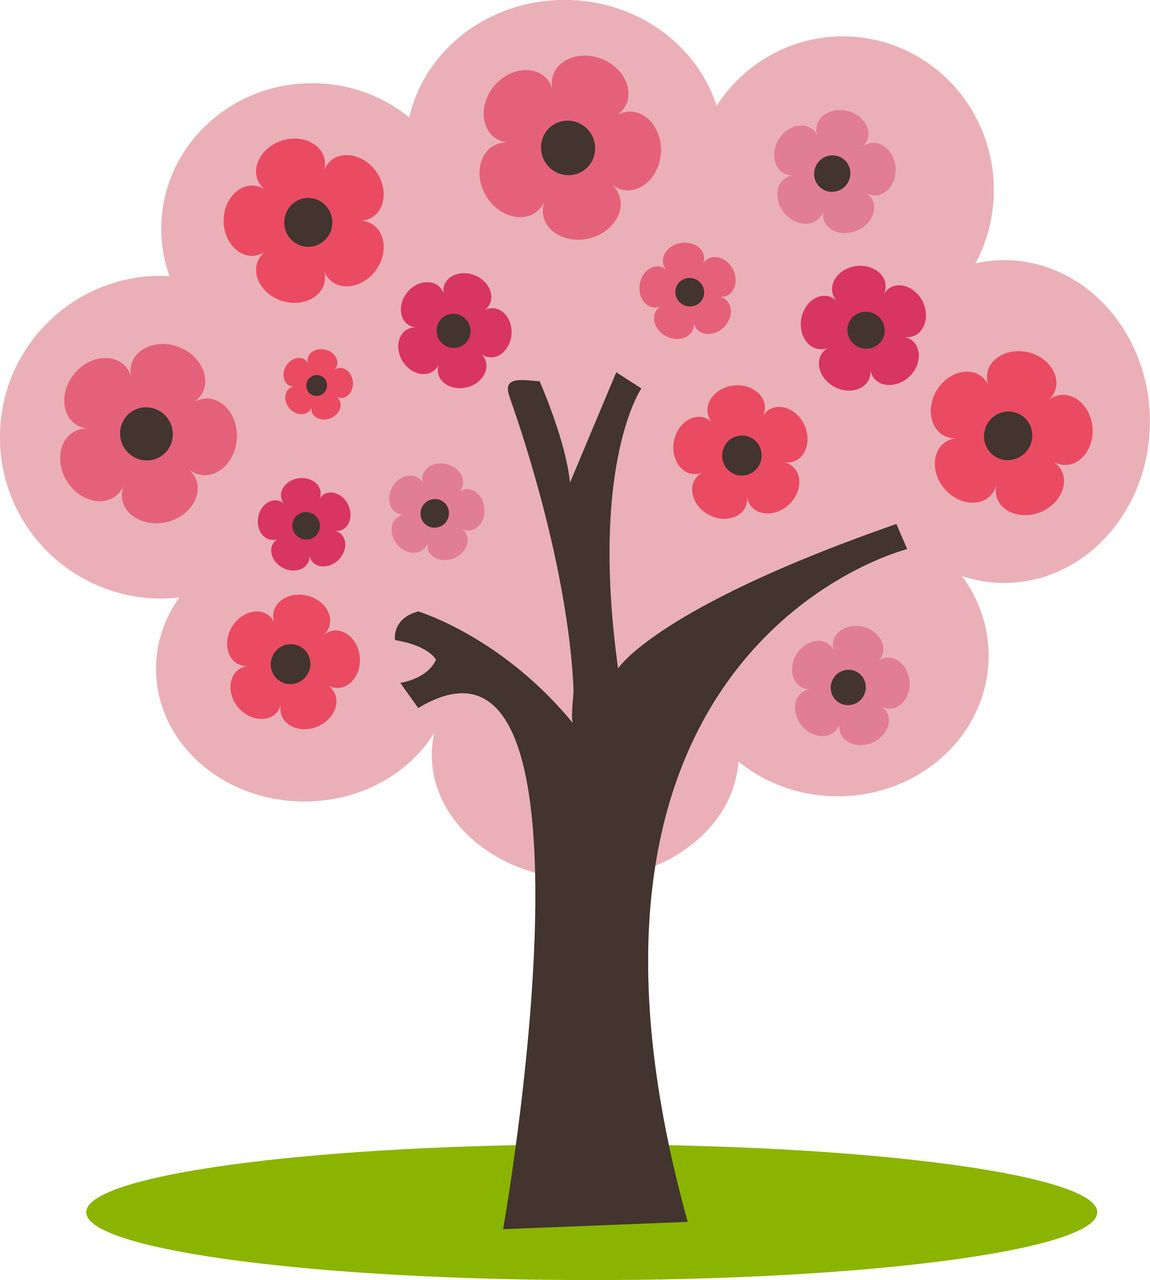 Ppbn Designs Tree With Flowers 0 50 Http Www Ppbndesigns